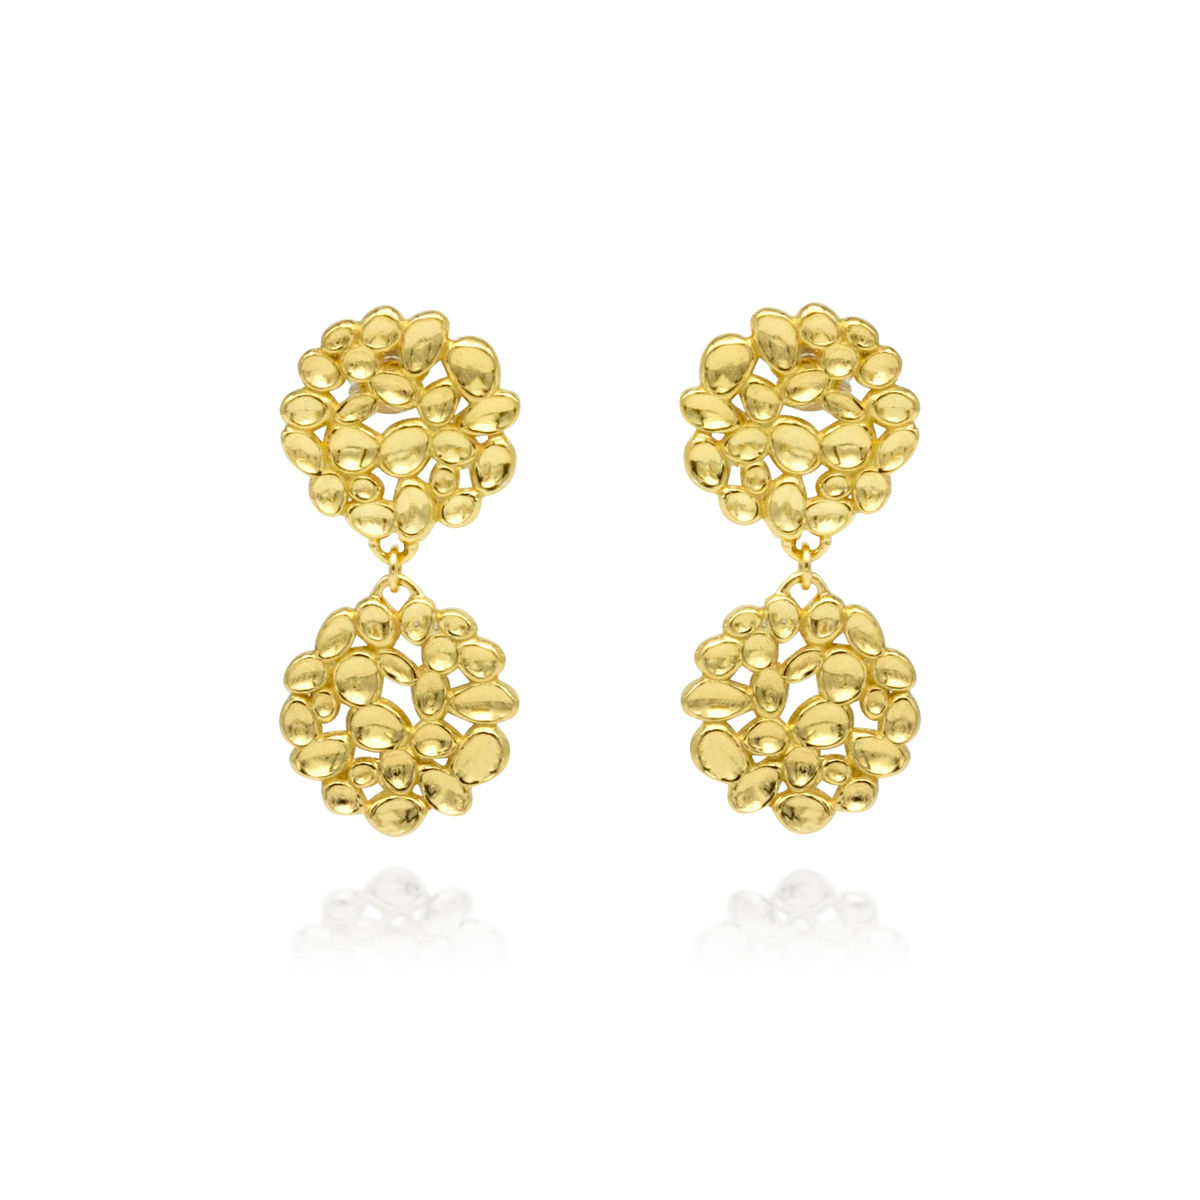 SHIMMER Array drop earrings - gold plated sterling silver - product images  of